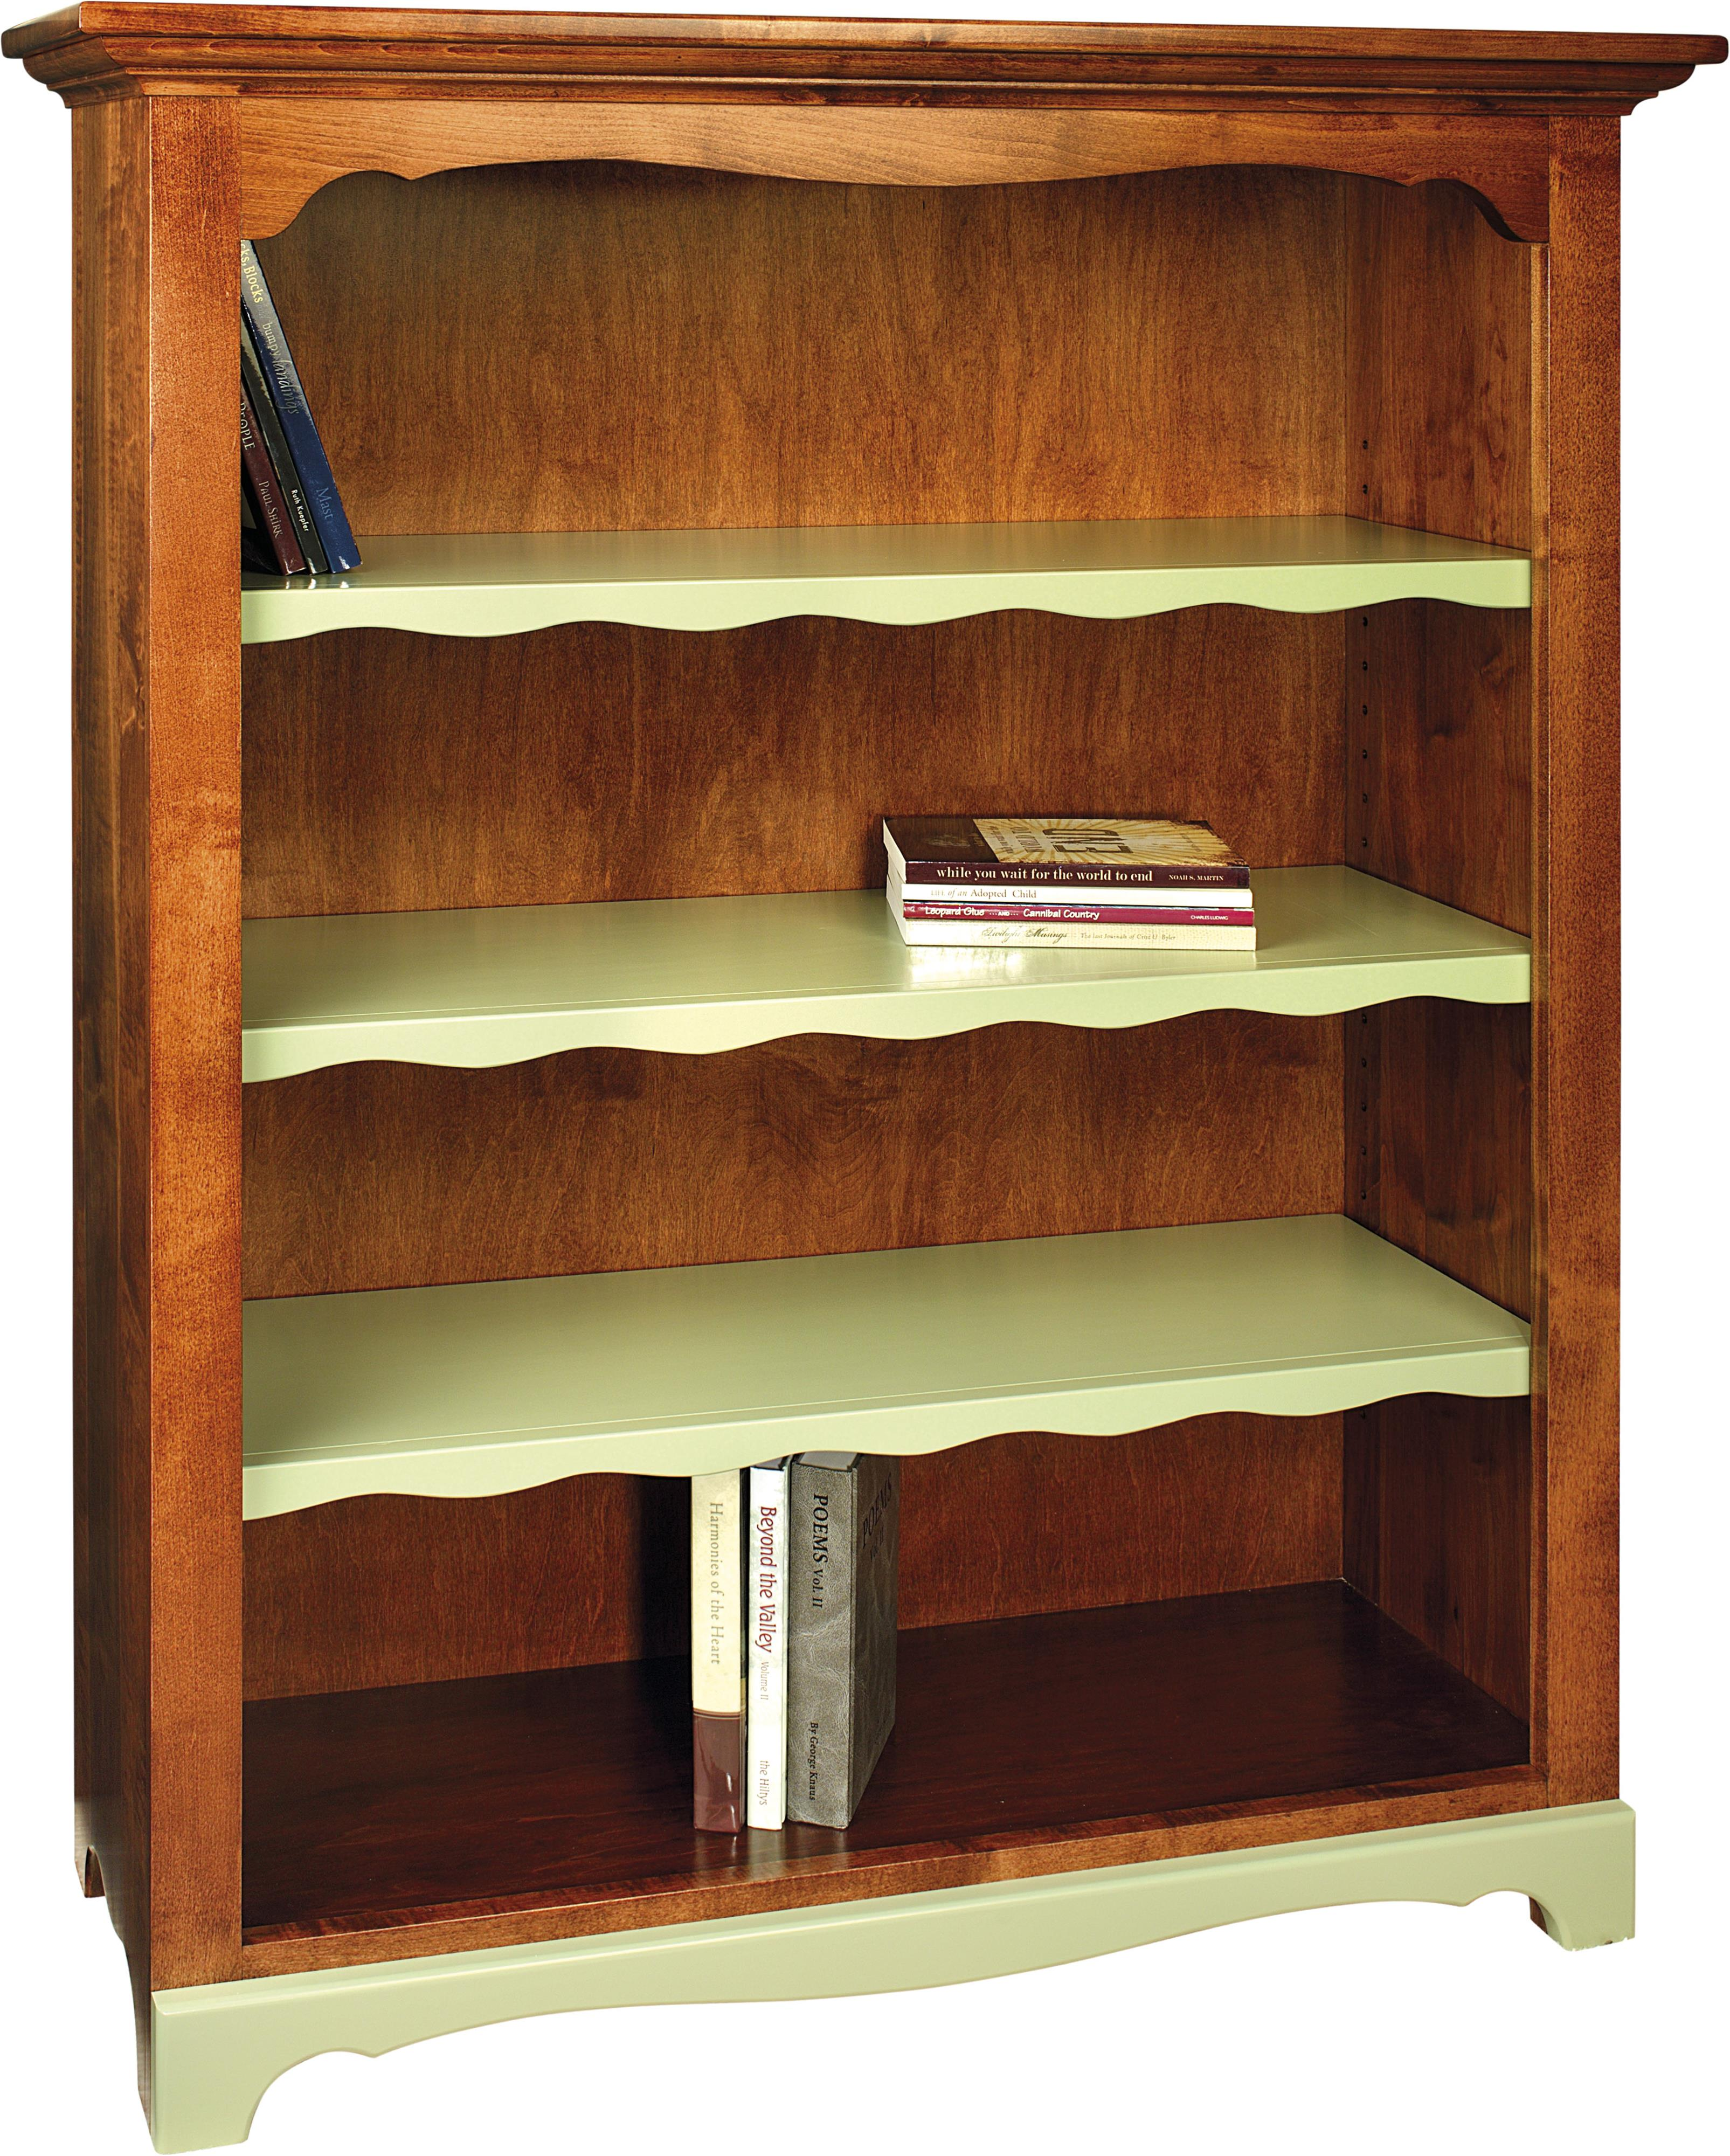 Wonder Wood Bookcases Customizable Maple Grove Bookcase by Wonder Wood at Saugerties Furniture Mart